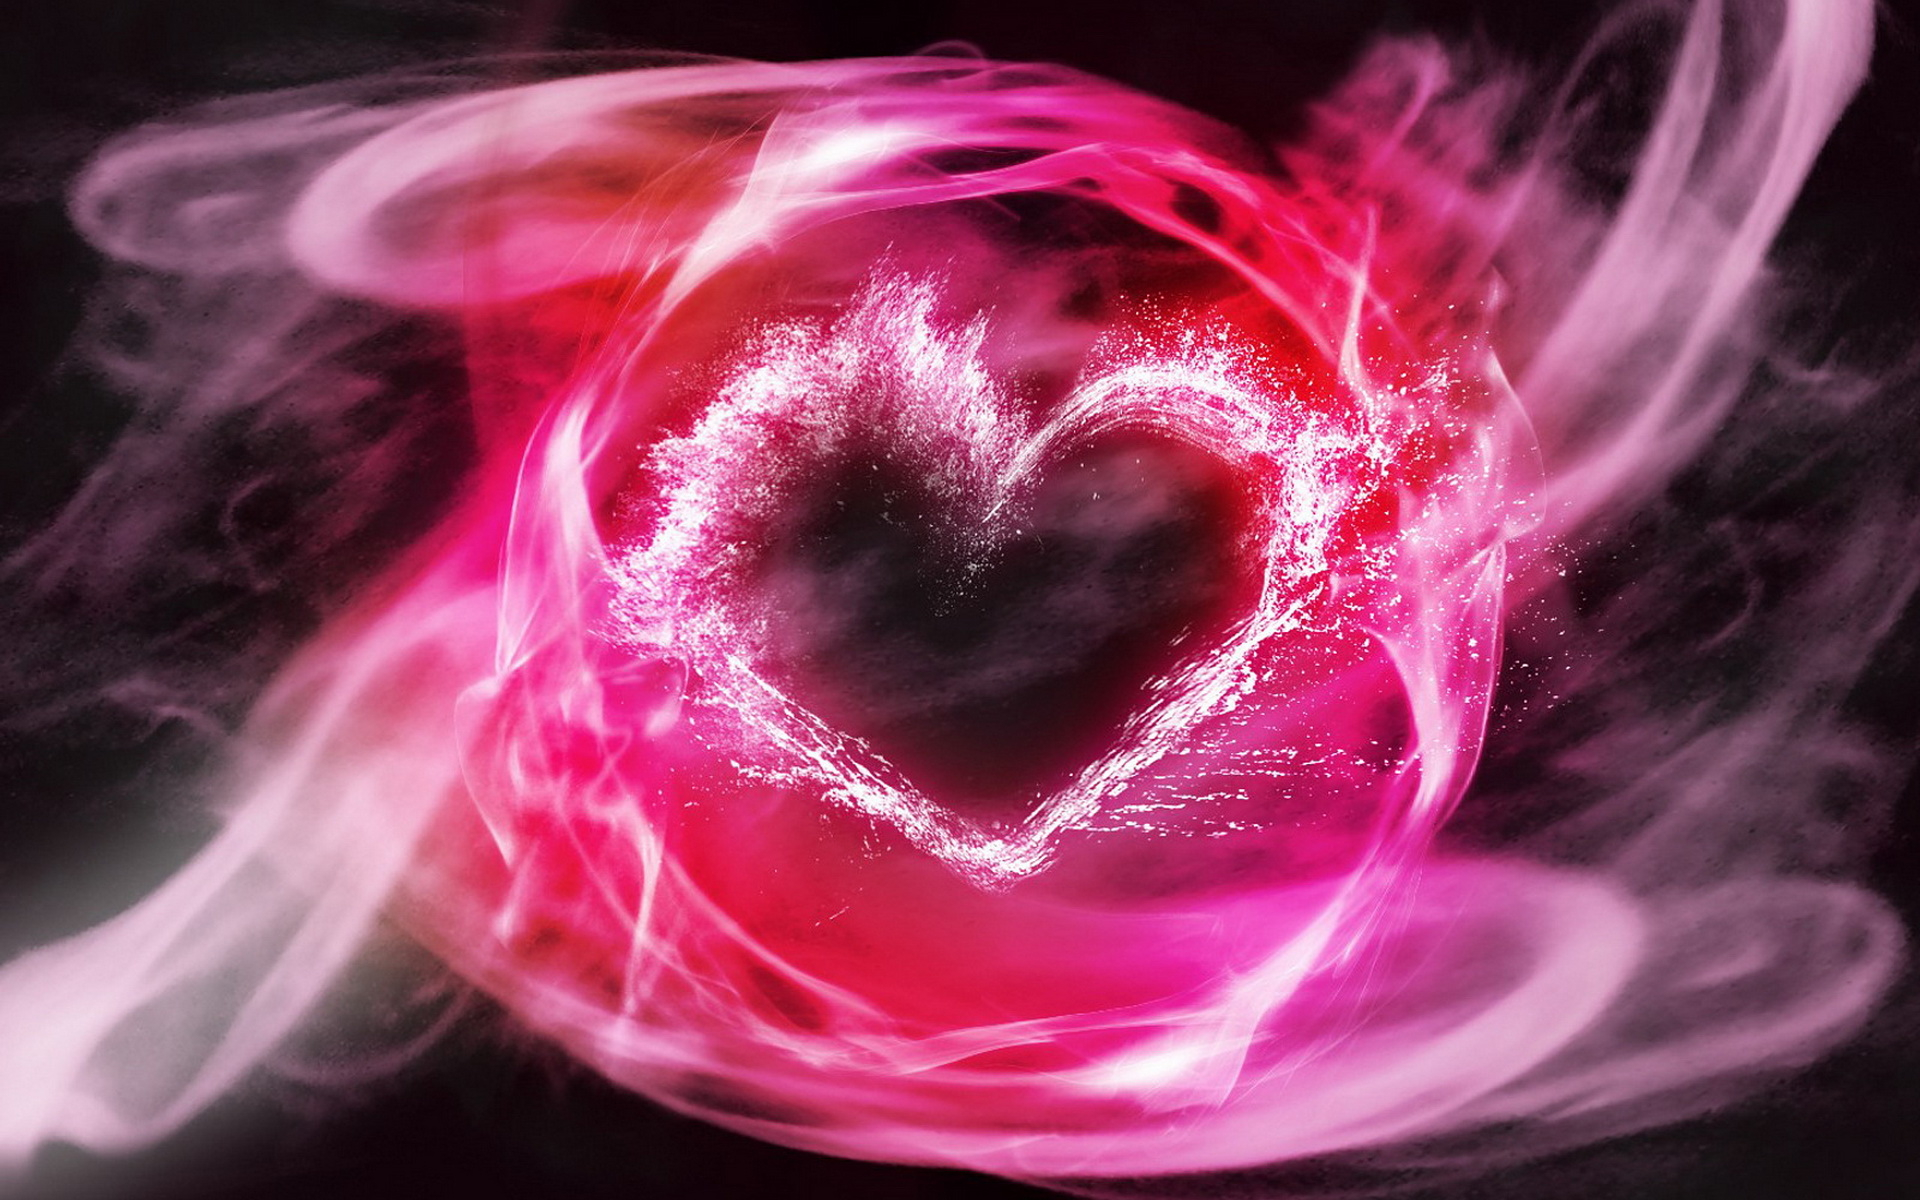 Flaming heart wallpapers and images   wallpapers pictures photos 1920x1200